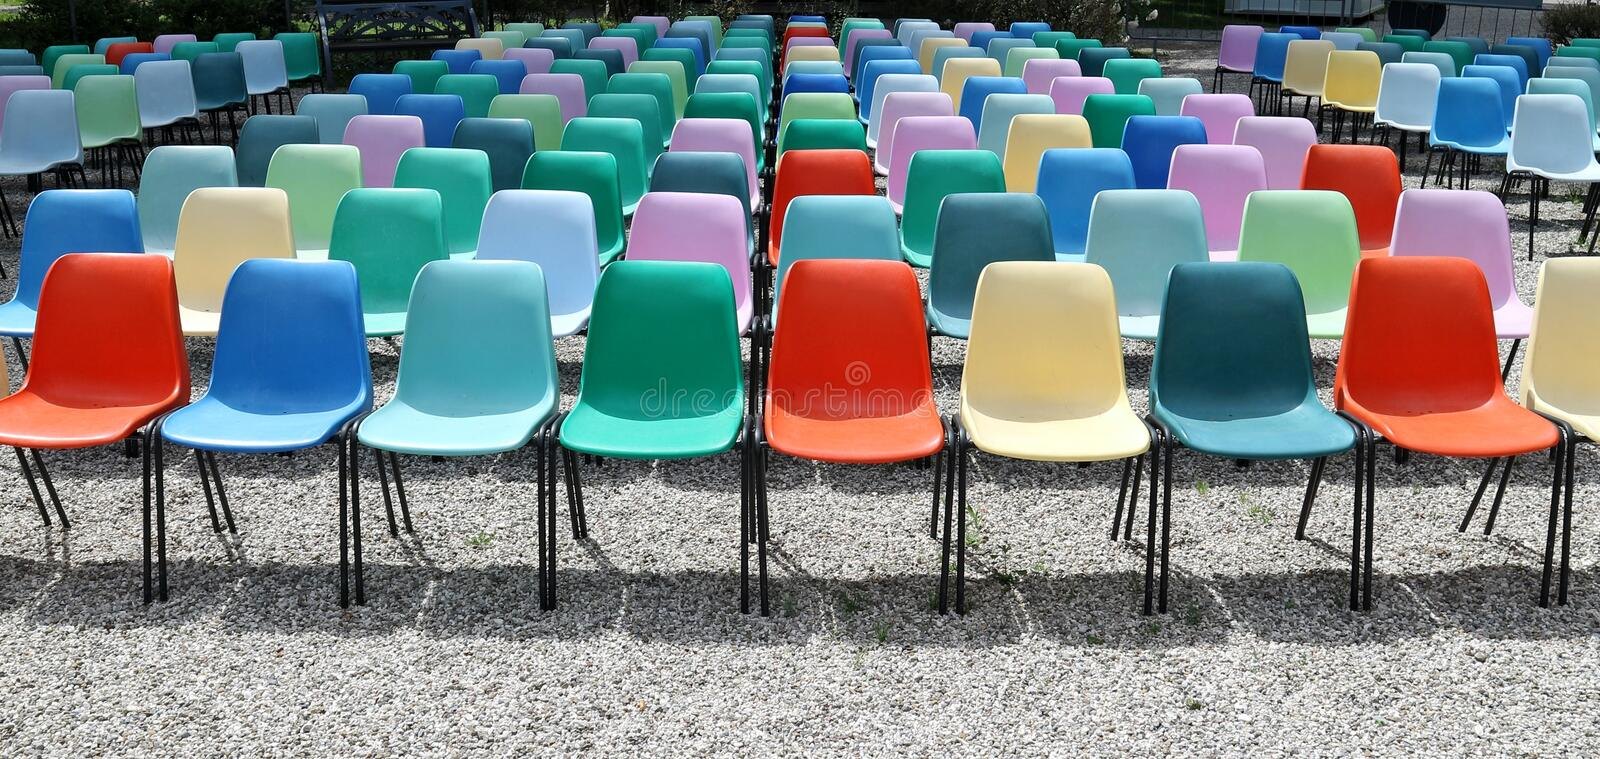 Long rows of empty colorful plastic chairs geometrically arranged under the sun. Texture and background. Copy space royalty free stock images